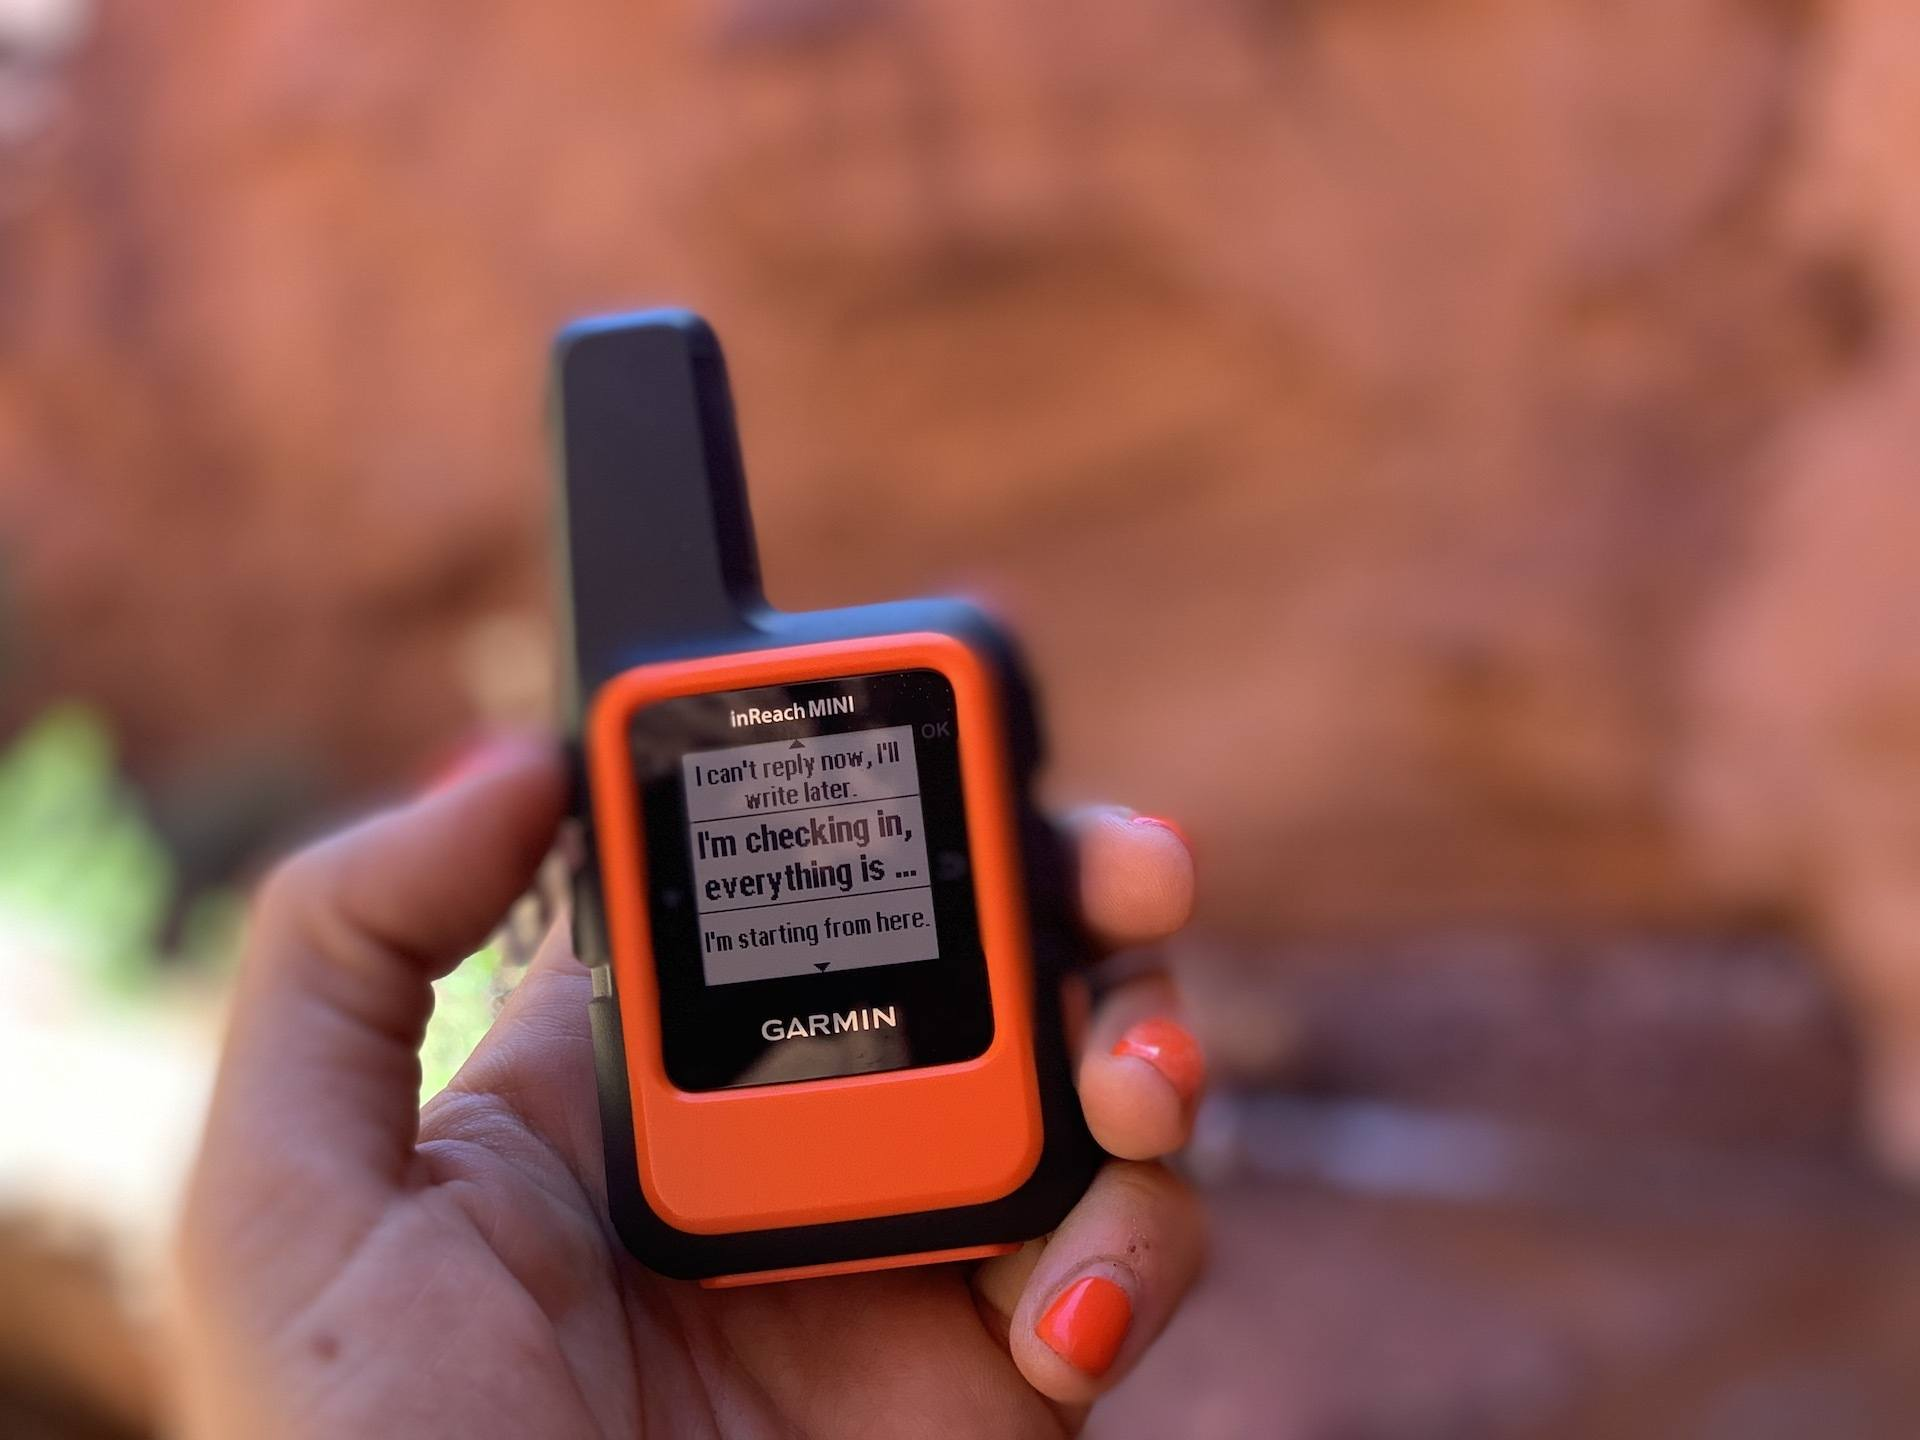 Garmin Inreach mini is an essential piece of gear for packrafting the Escalante River